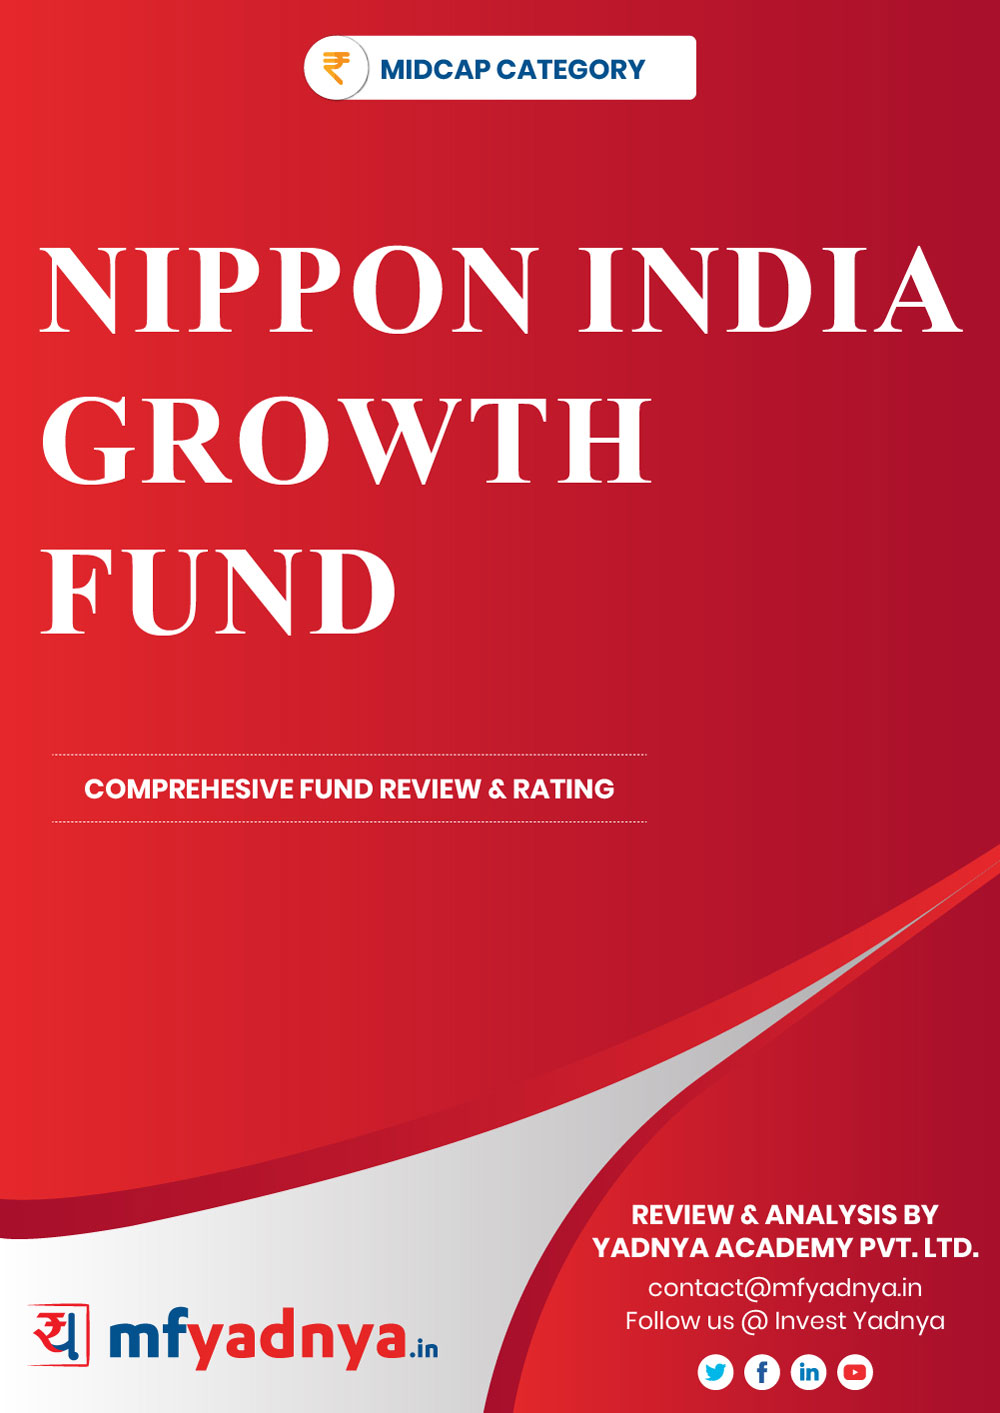 Midcap Category Review - Nippon India Growth Fund. Most Comprehensive and detailed MF review based on Yadnya's proprietary methodology of Green, Yellow & Red Star. Detailed Analysis & Review based on Oct 31st, 2019 data.